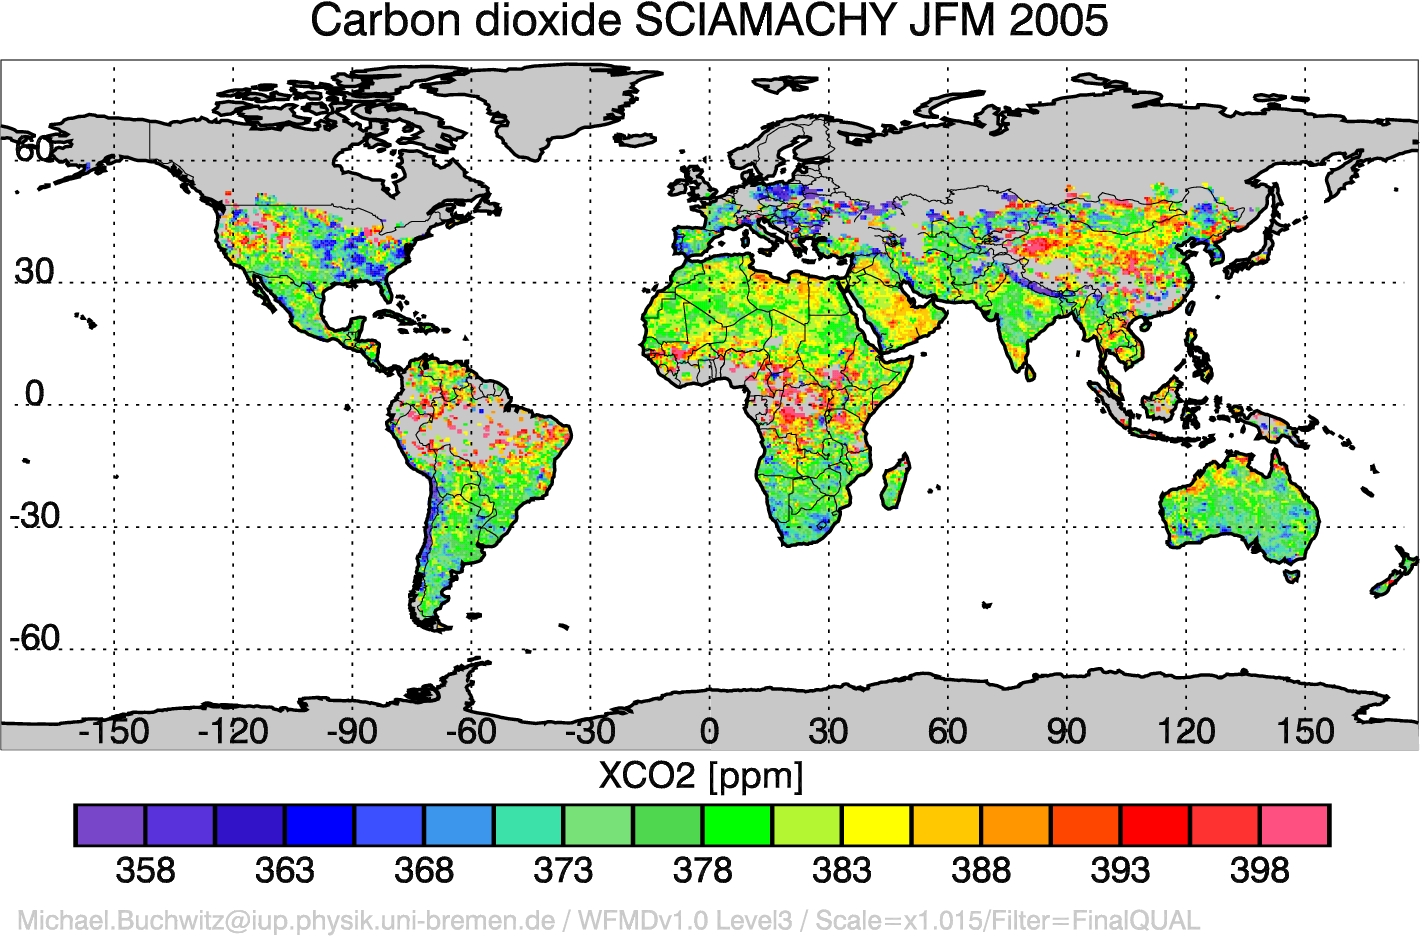 Carbon dioxide from SCIAMACHY